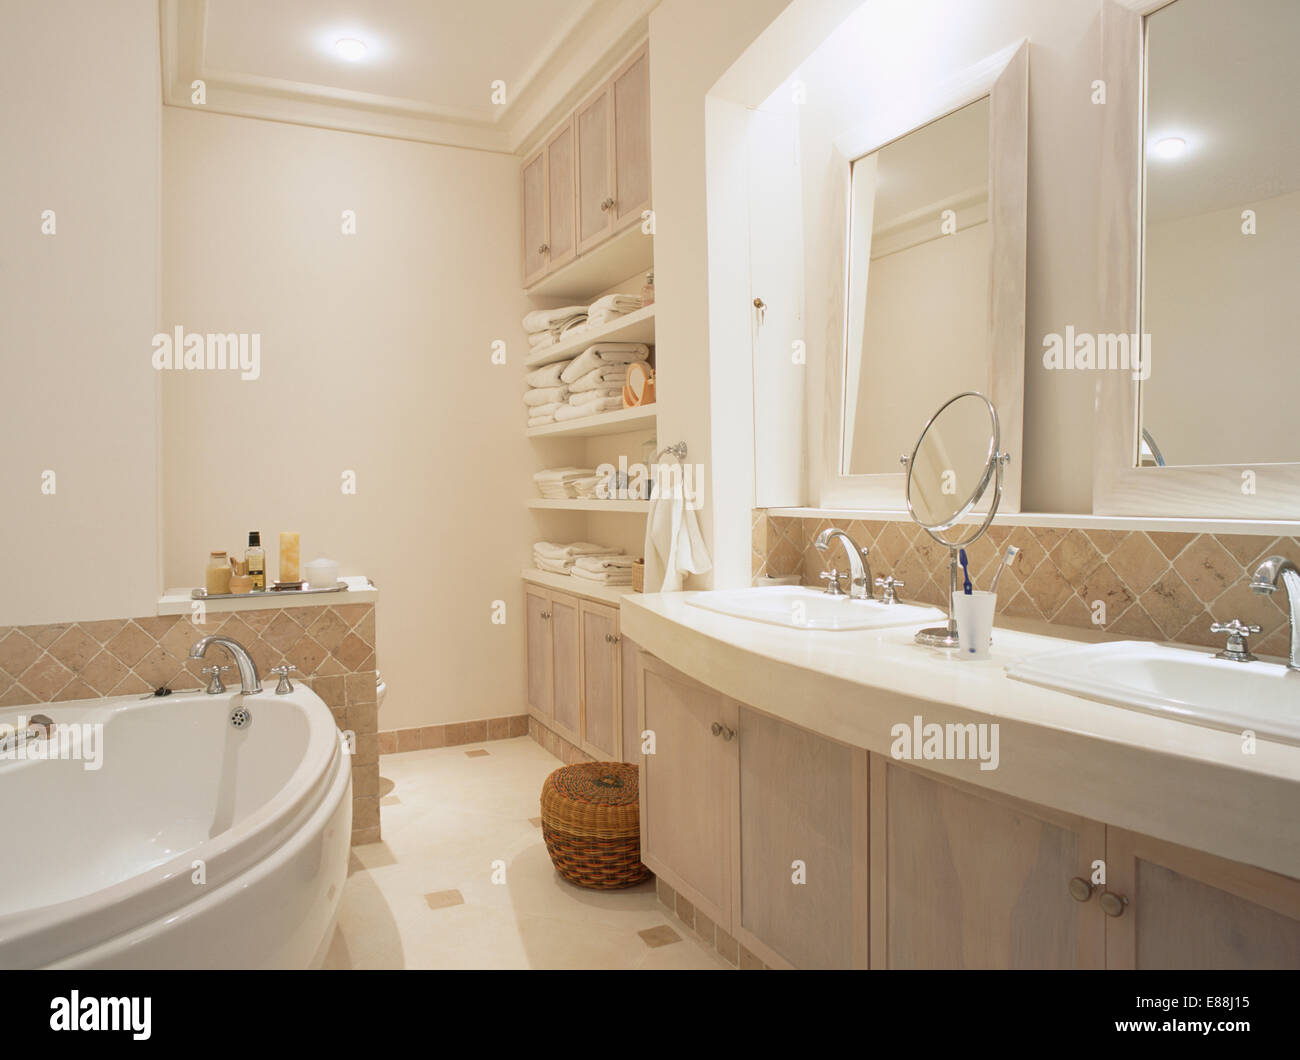 Mirrors above double basins built into vanity unit in modern ... for modern bathroom cupboards  565ane